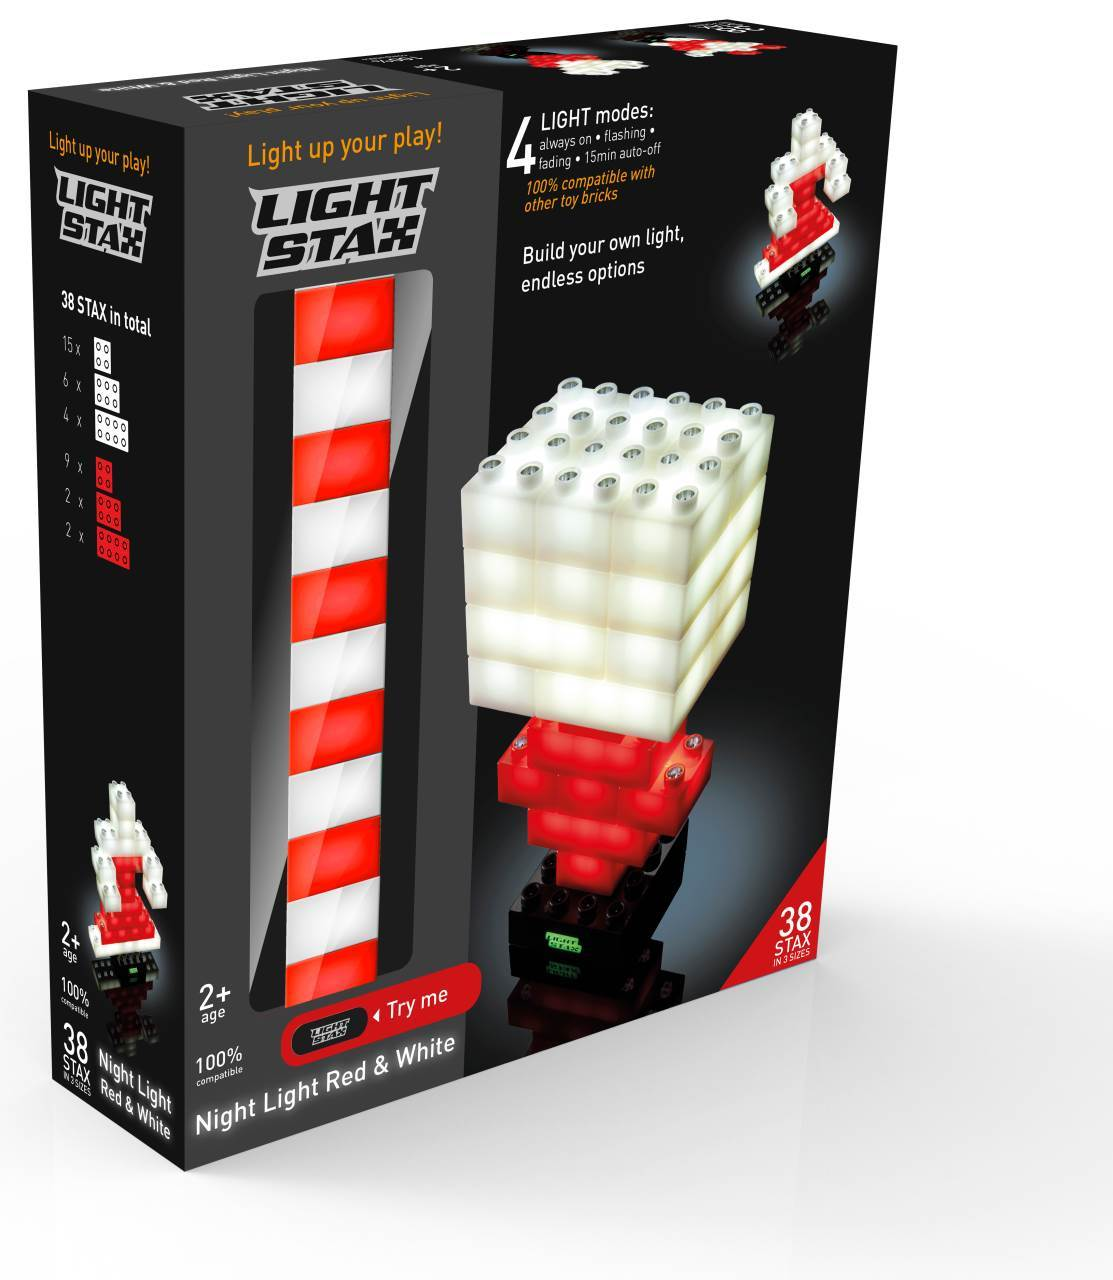 STAX® Night Light Red & White - DUPLO®-kompatibel